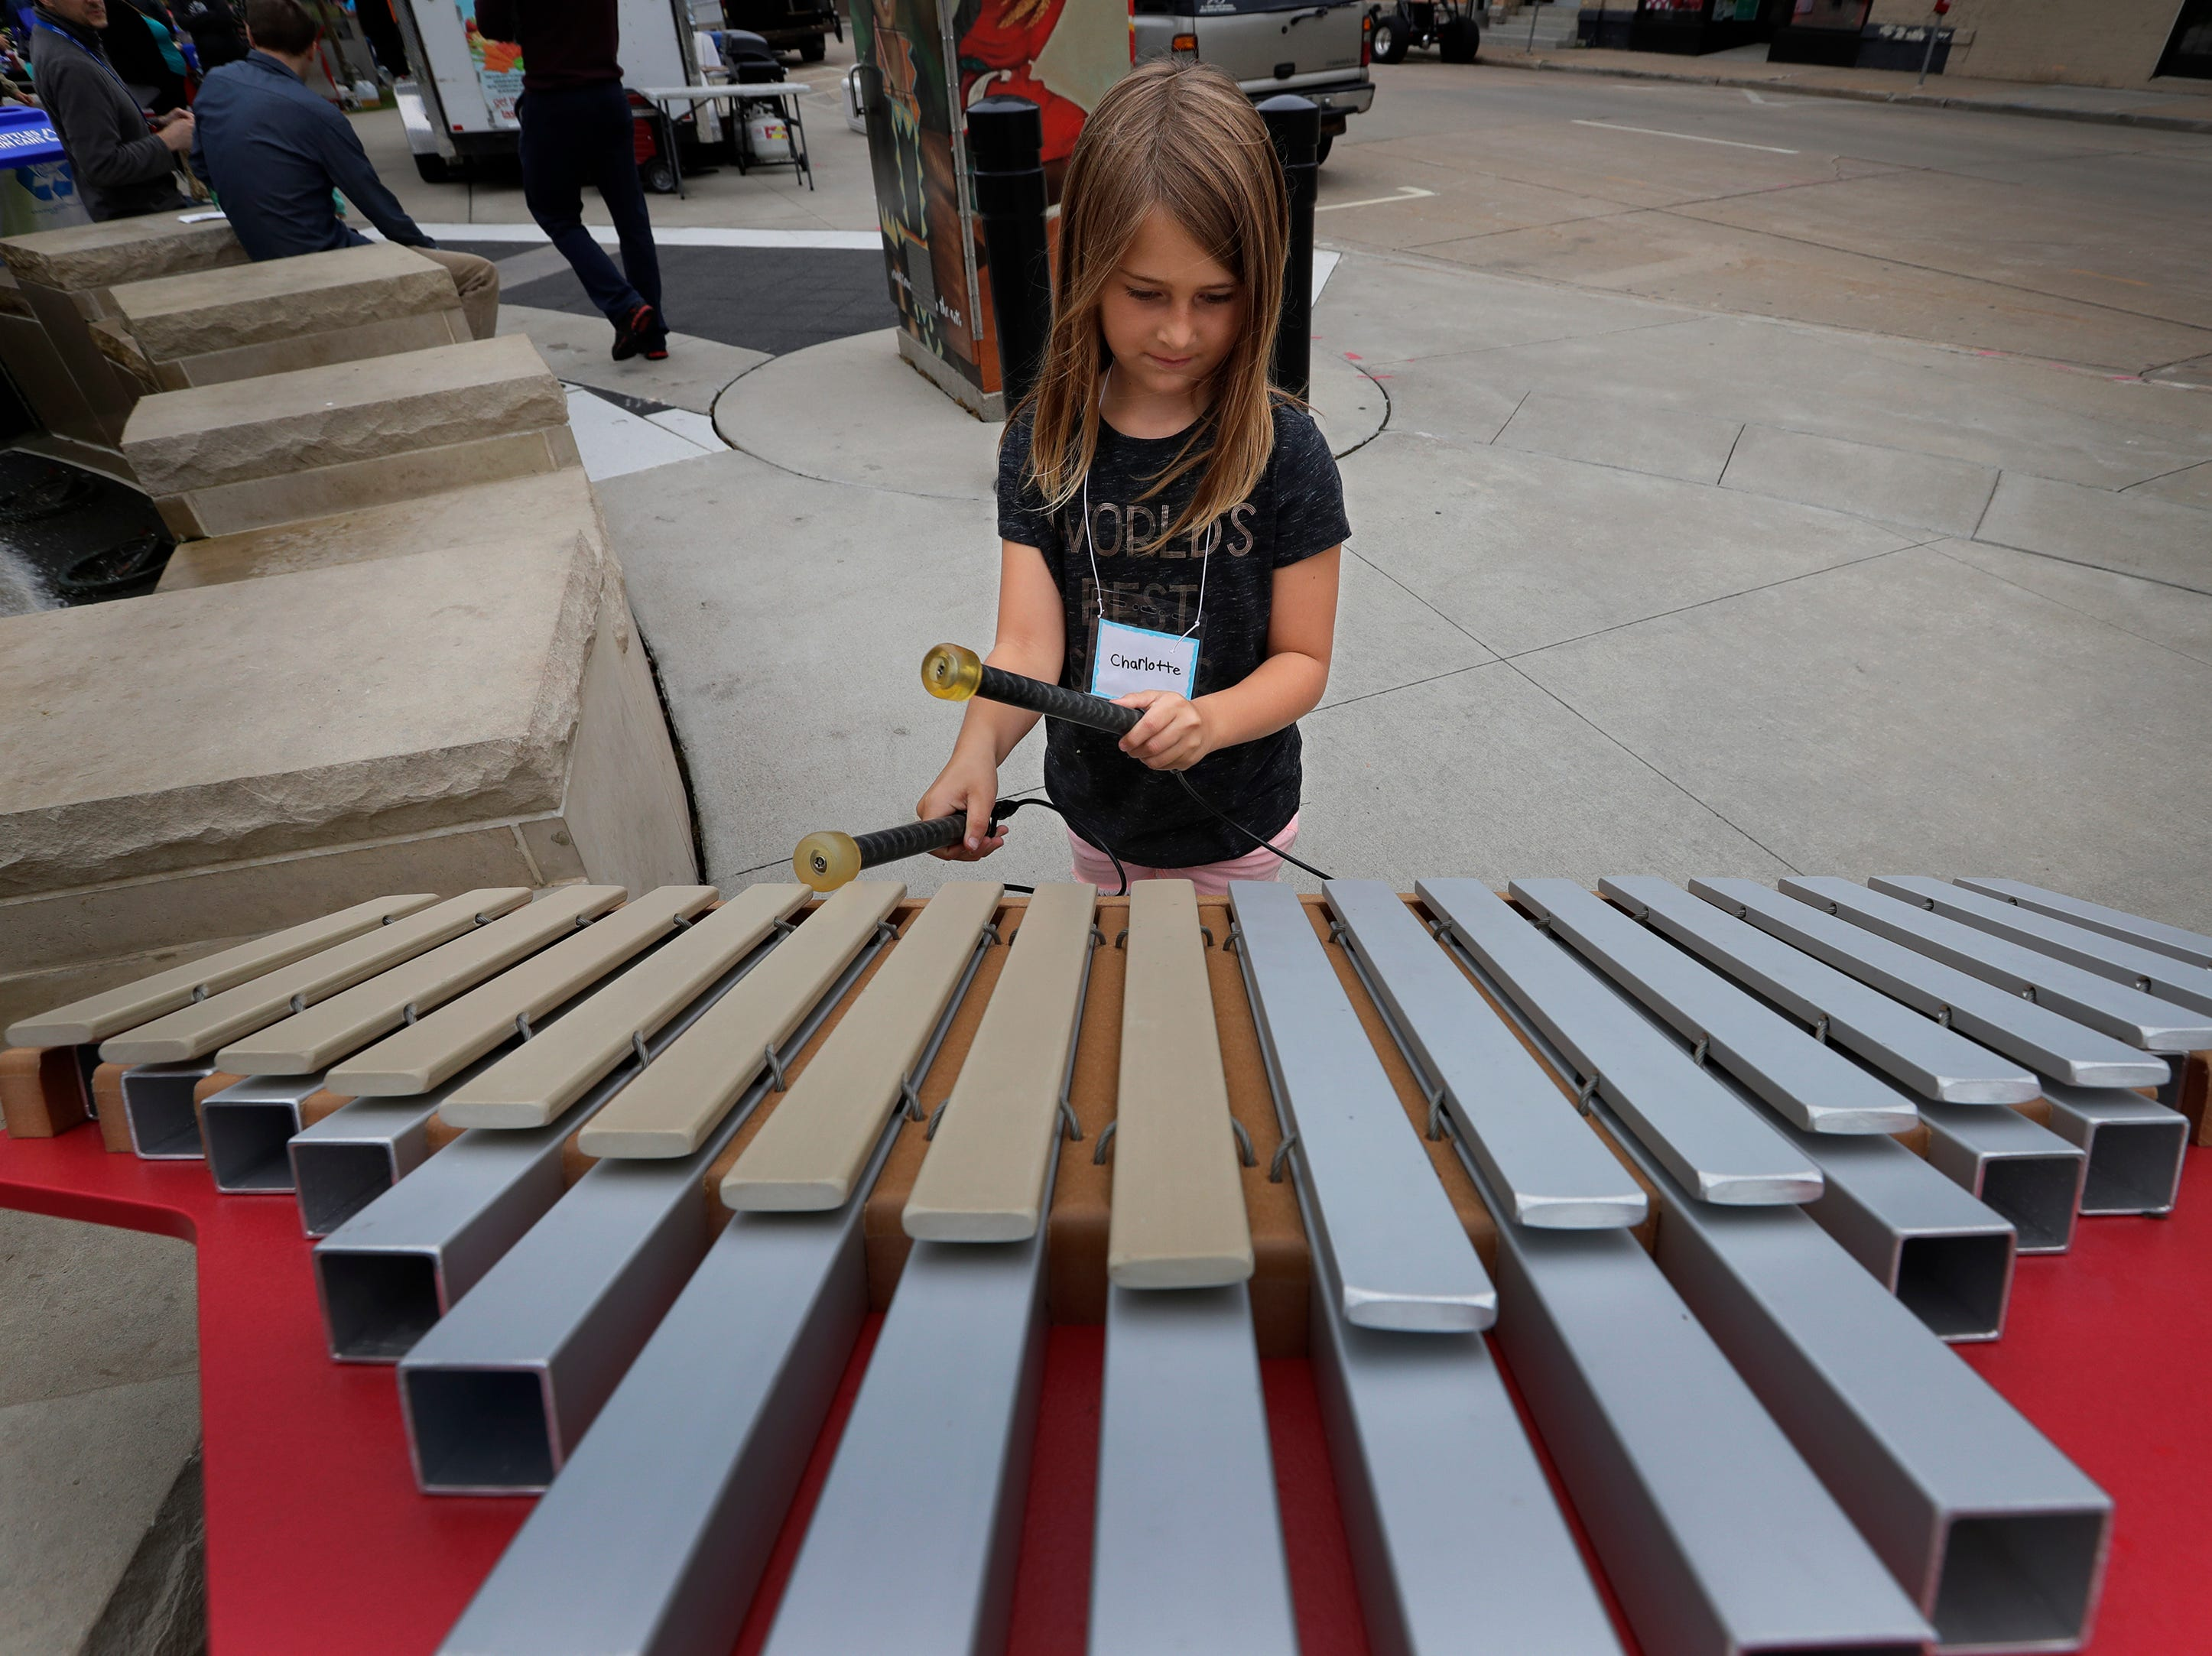 Charlotte Beyer, 7, of Appleton plays an instrument at Houdini Plaza during the Mile of Music Thursday, August 2, 2018, in Appleton, Wis.  Dan Powers/USA TODAY NETWORK-Wisconsin